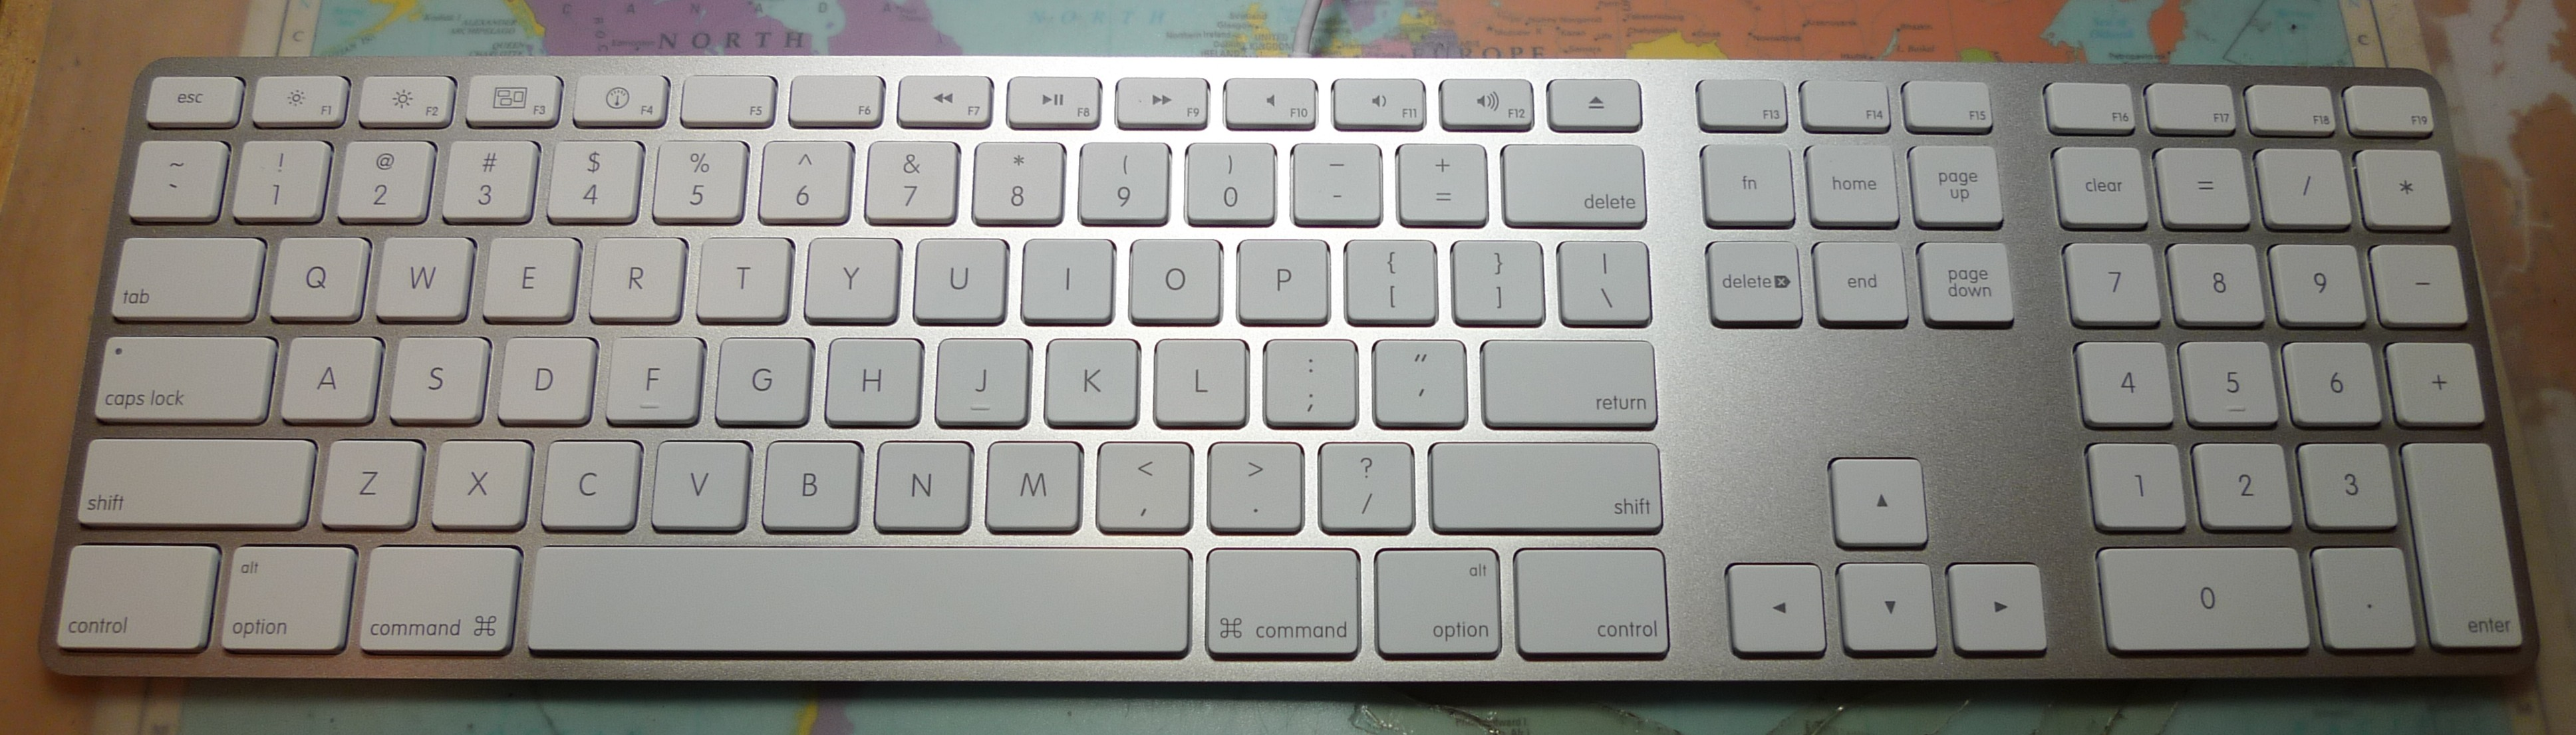 Apple keyboards for Window keyboard